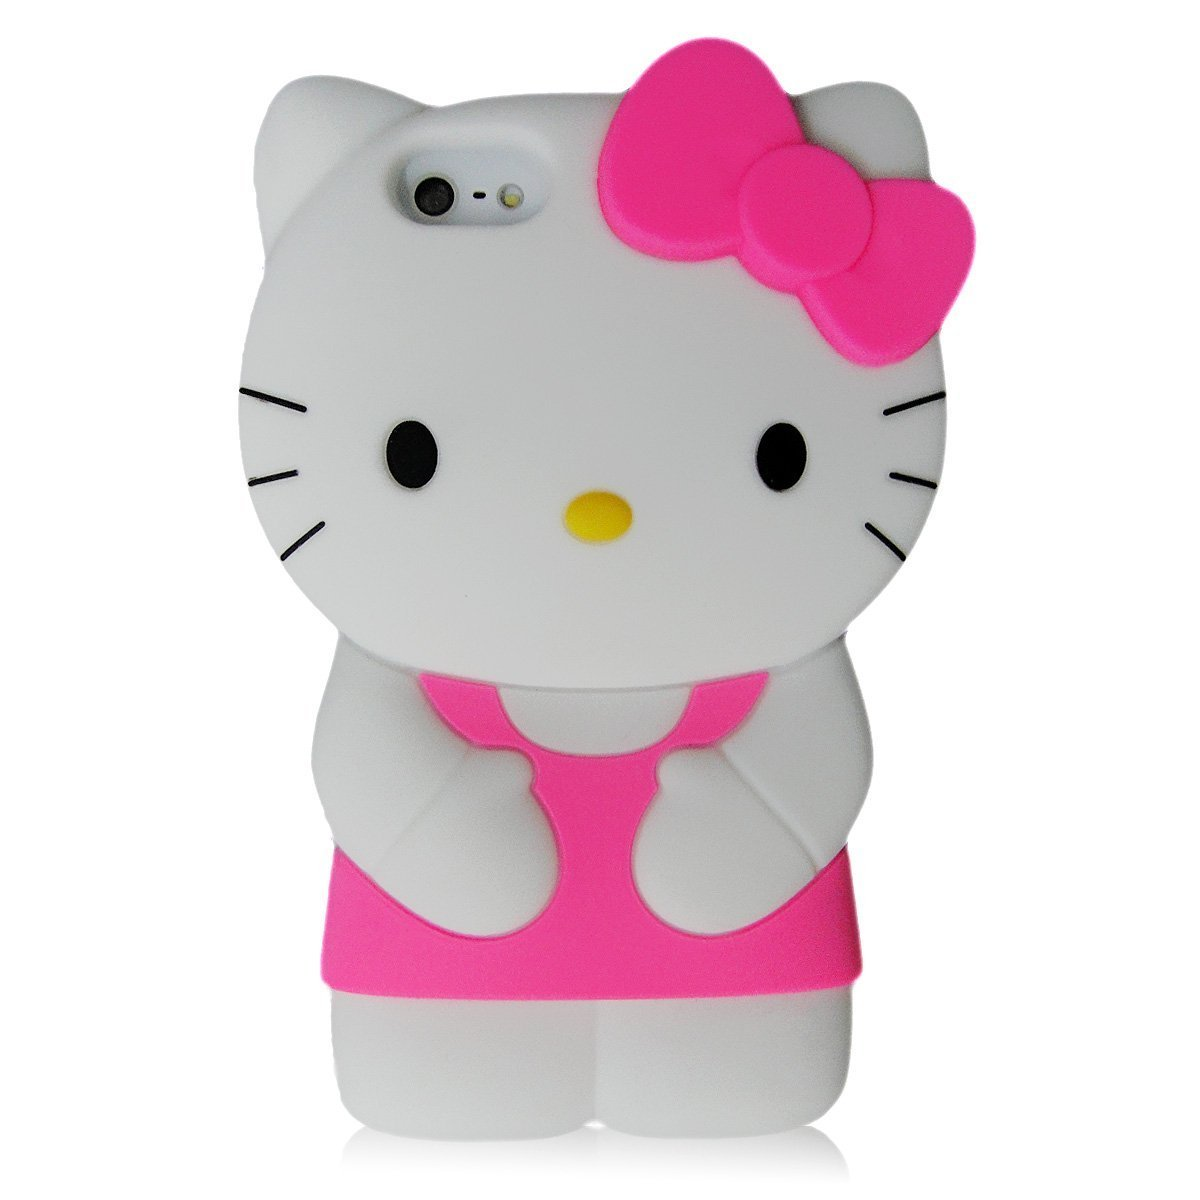 Amazon iphone 5 cartoon cases 3diphone 5 silicone hello kitty amazon iphone 5 cartoon cases 3diphone 5 silicone hello kitty casemodefan cute lovely cartoon animal series hello kitty silicon gel rubber case for voltagebd Choice Image